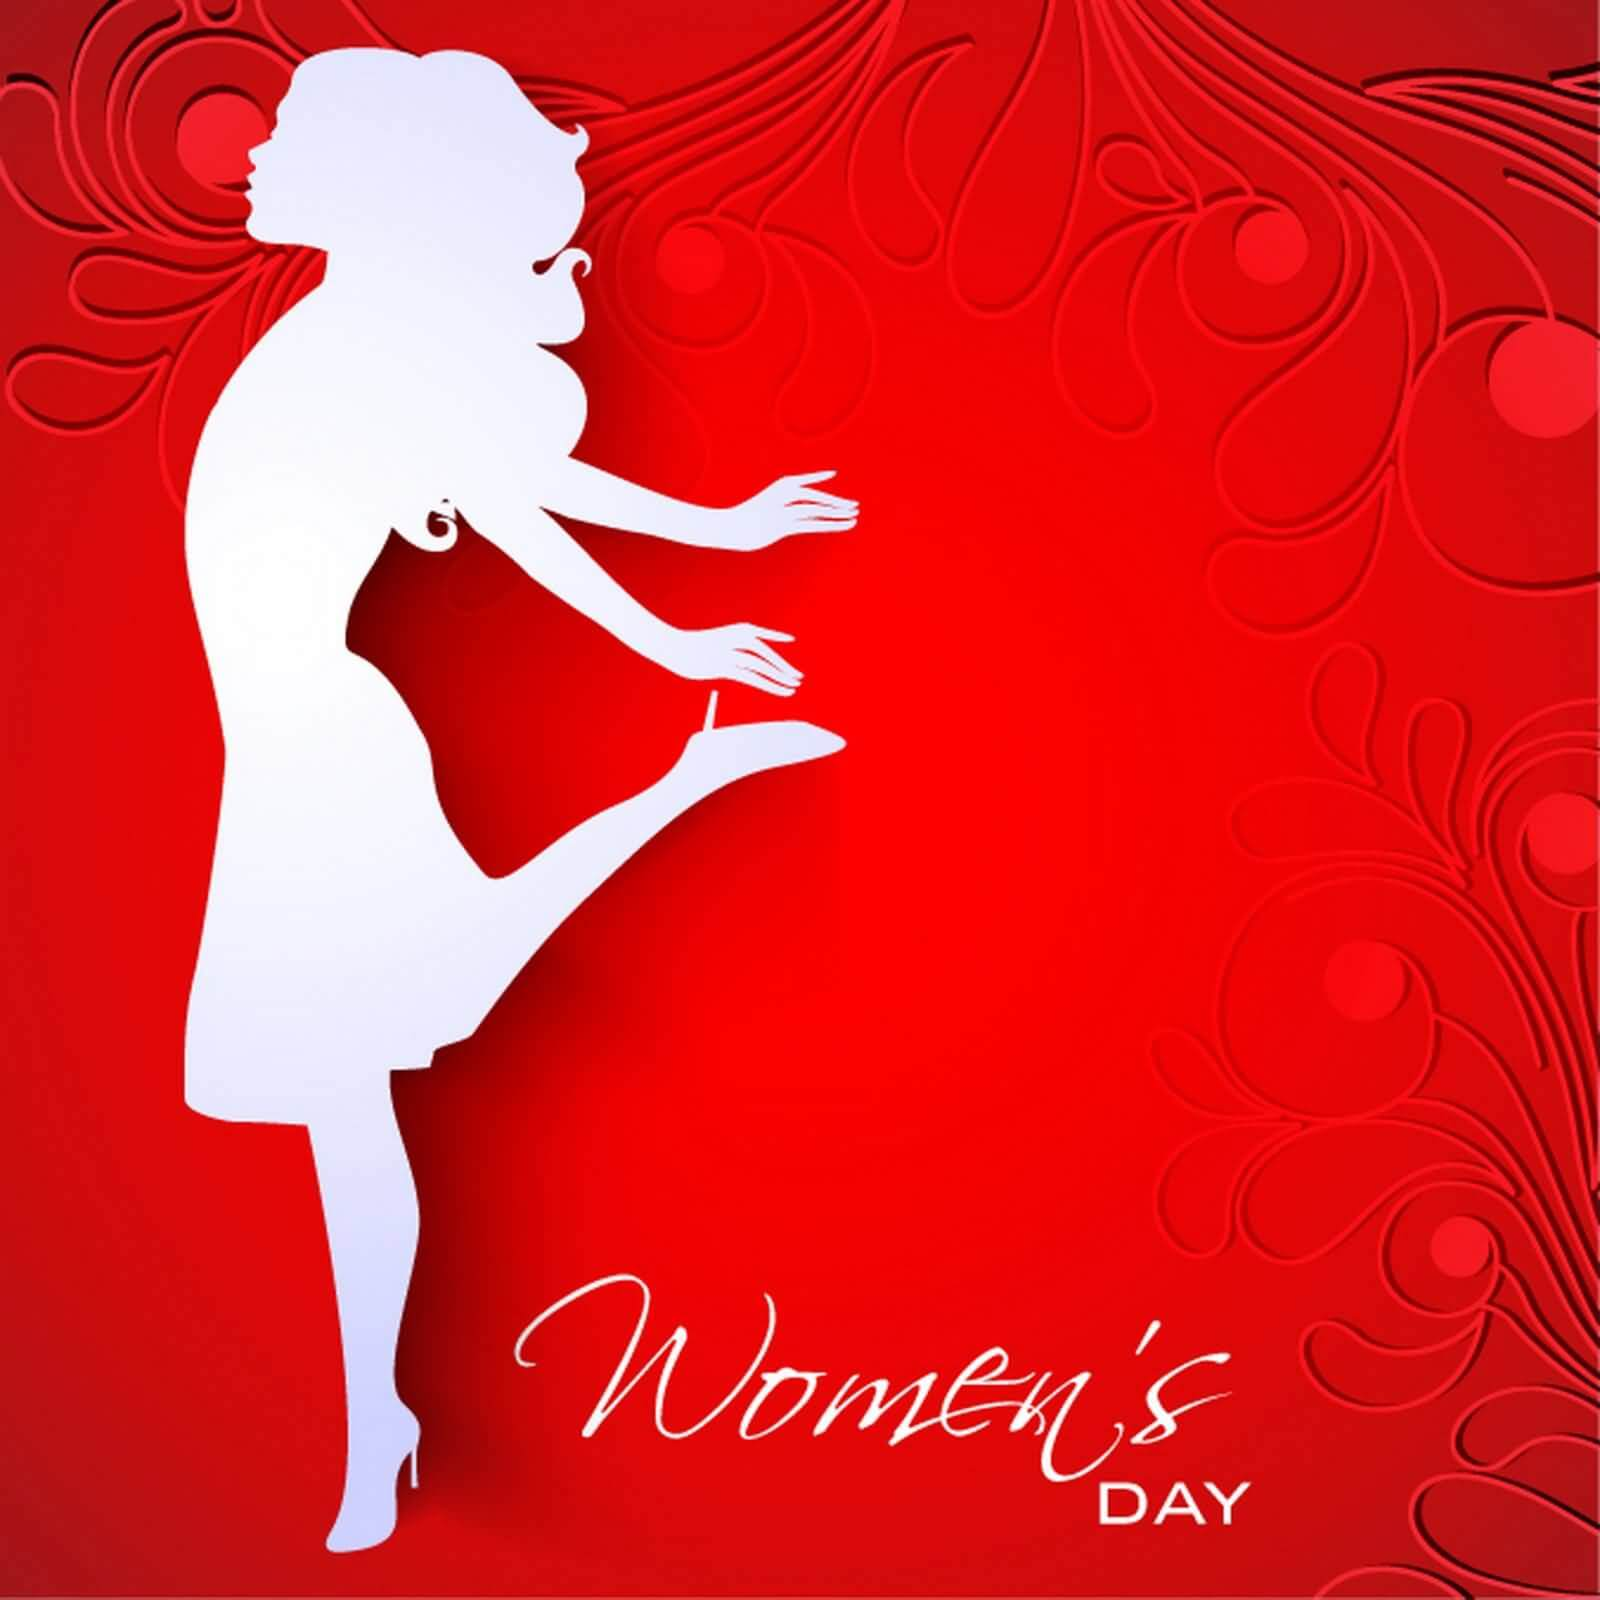 happy womens day wishes hd wallpaper silhouette